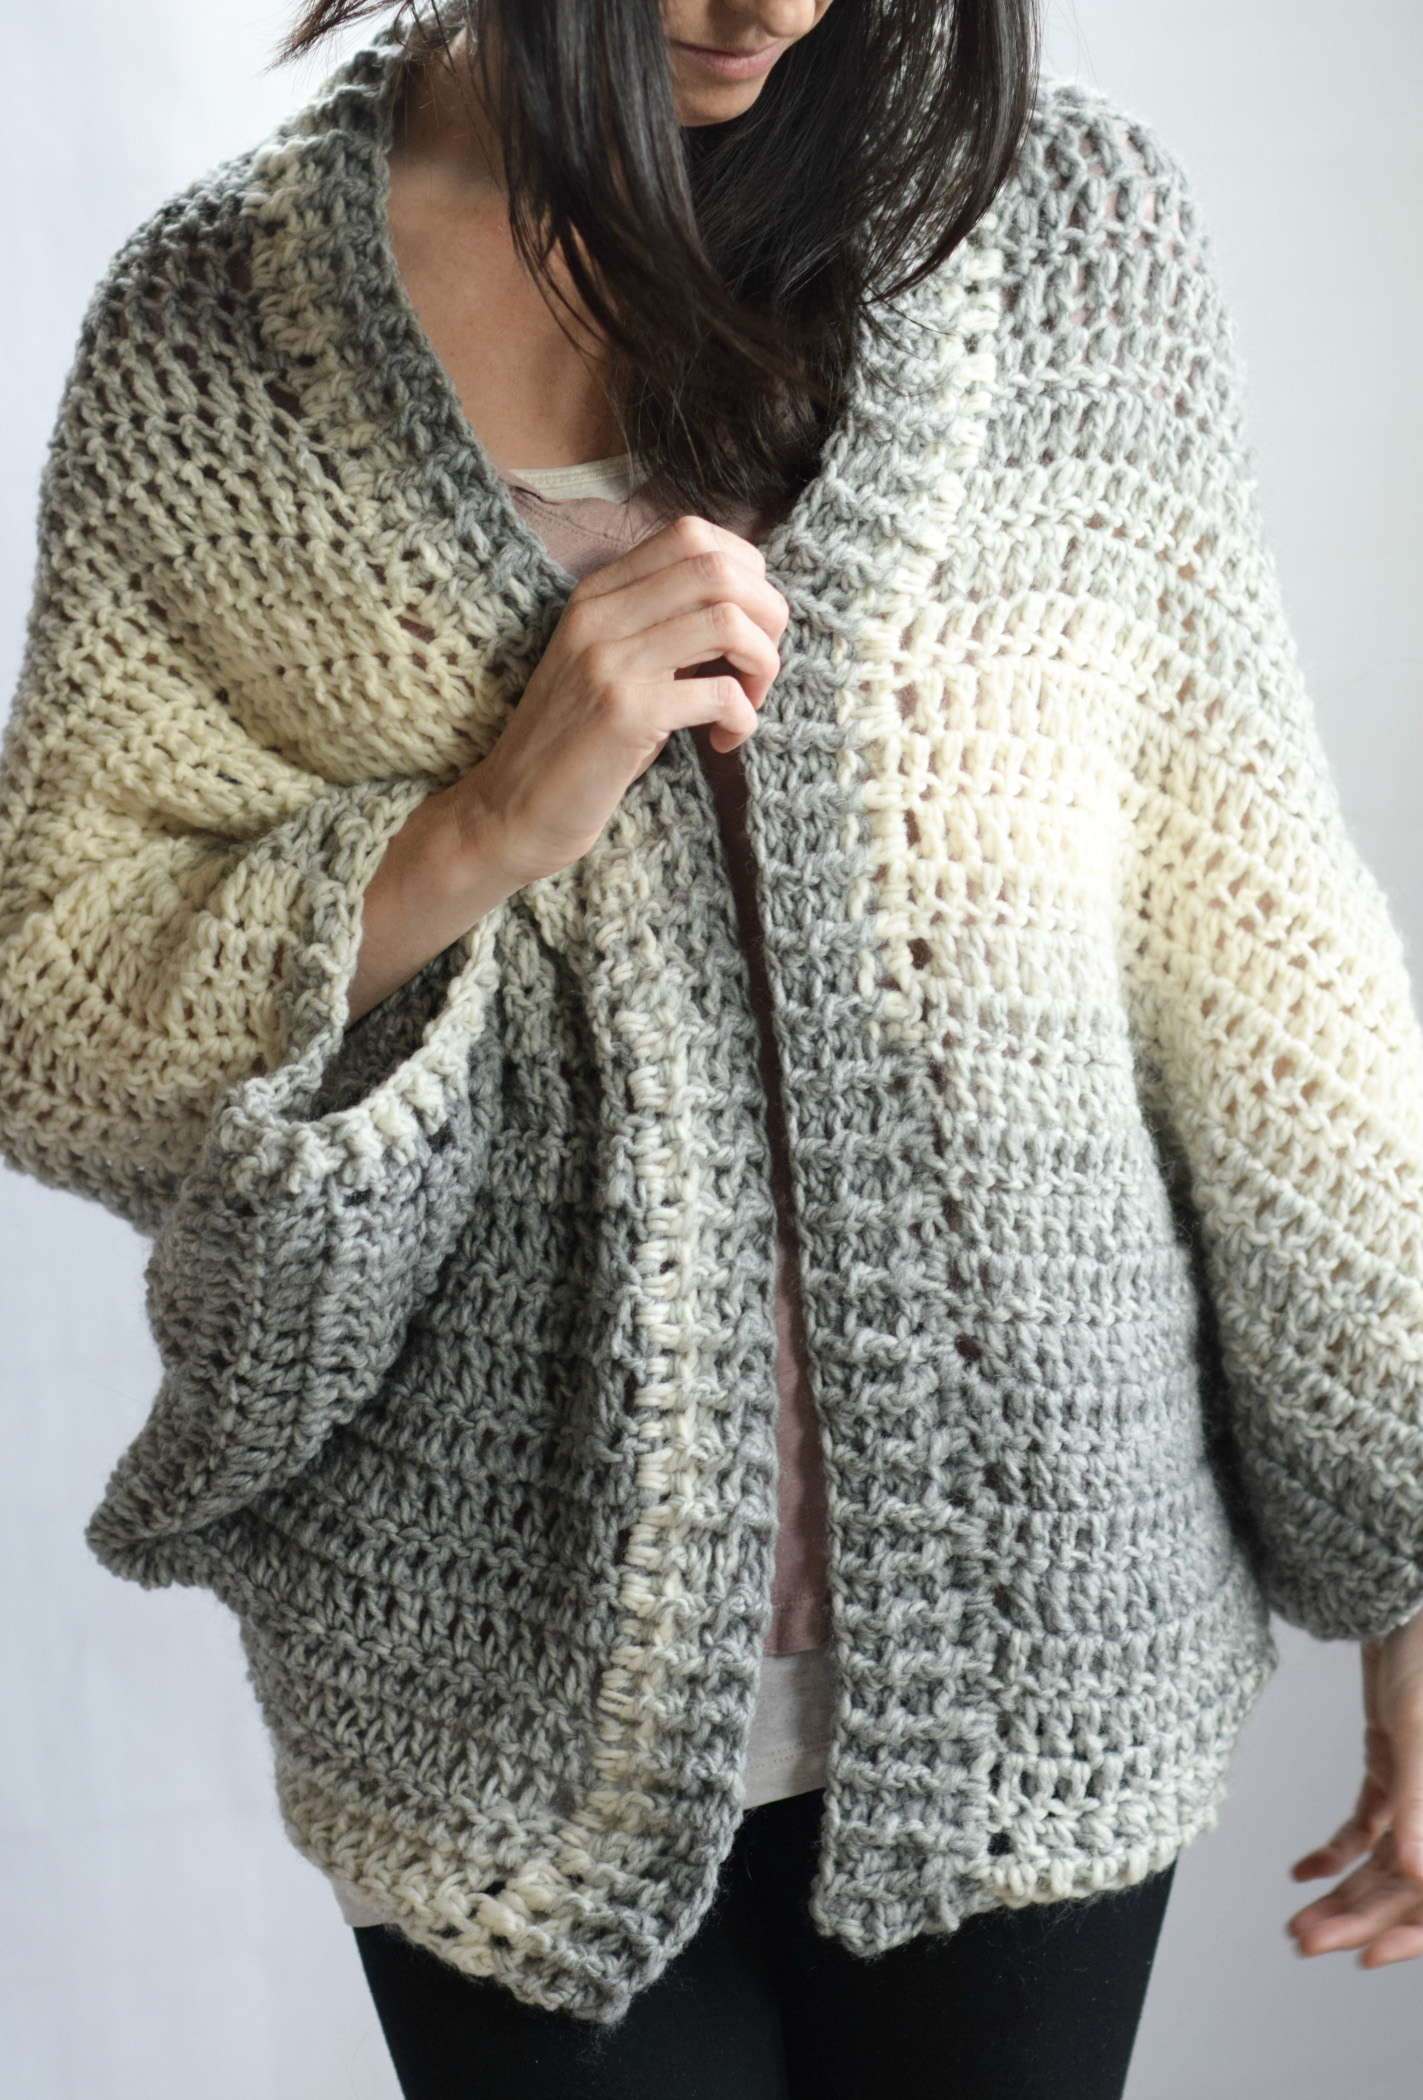 Summer Shrug Knitting Pattern Done In A Day Quick Shrug Crochet Pattern Mama In A Stitch